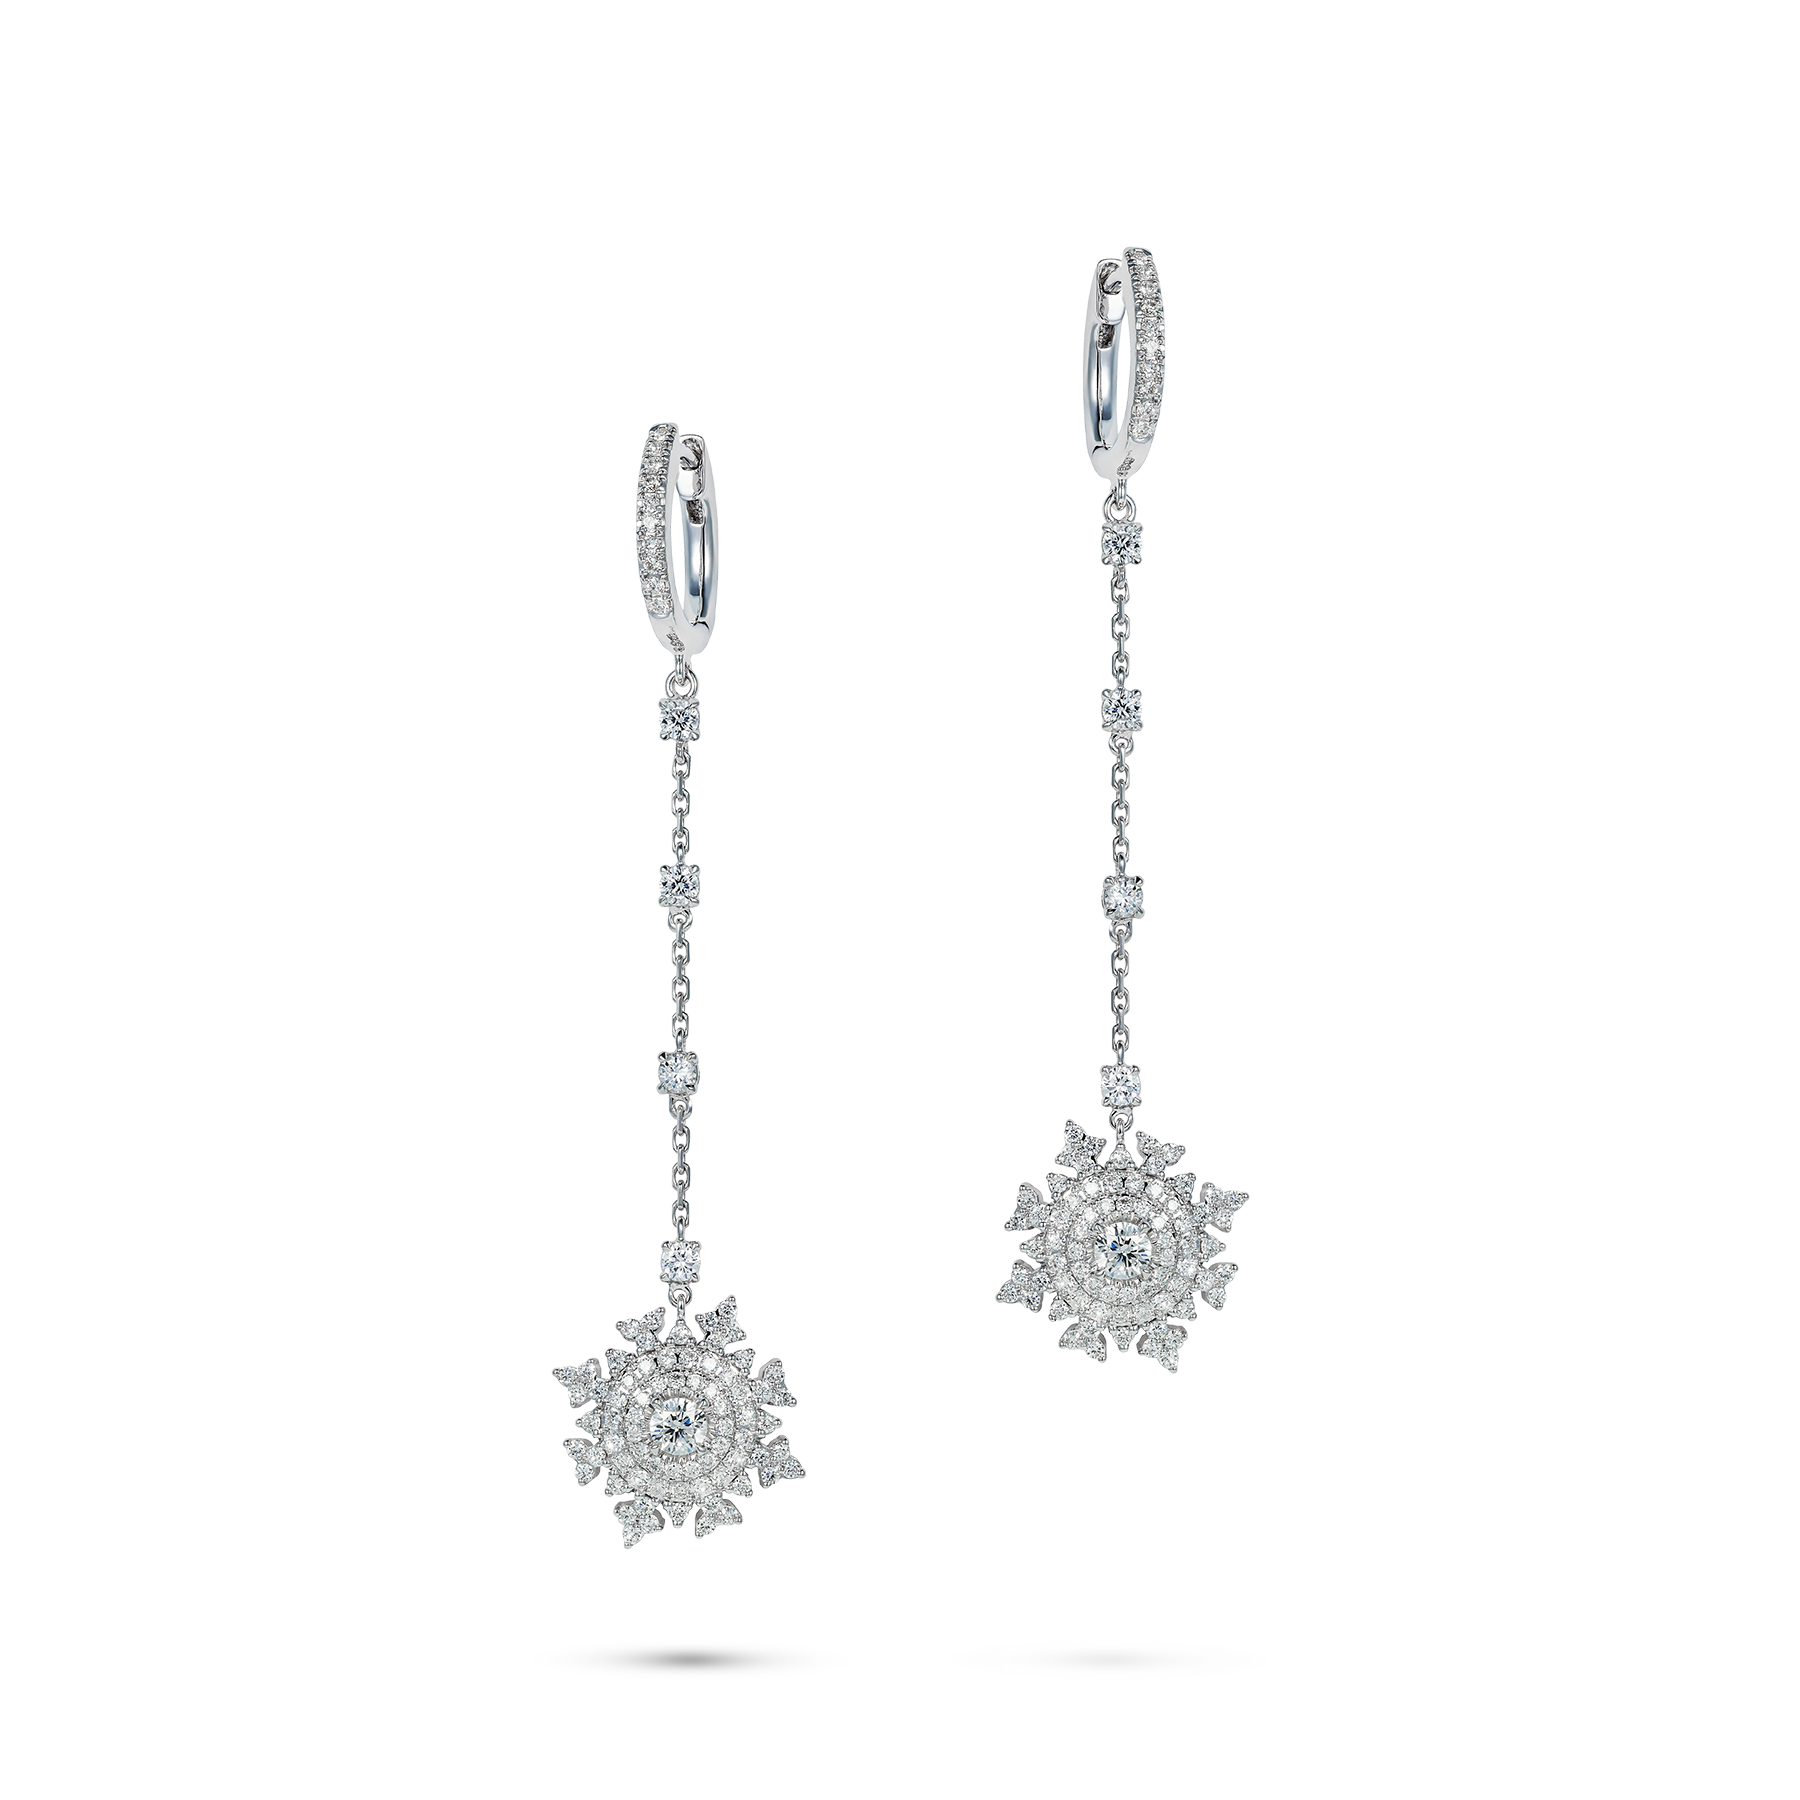 Petite Tsarina White Huggie Earrings by Nadine Aysoy on curated-crowd.com